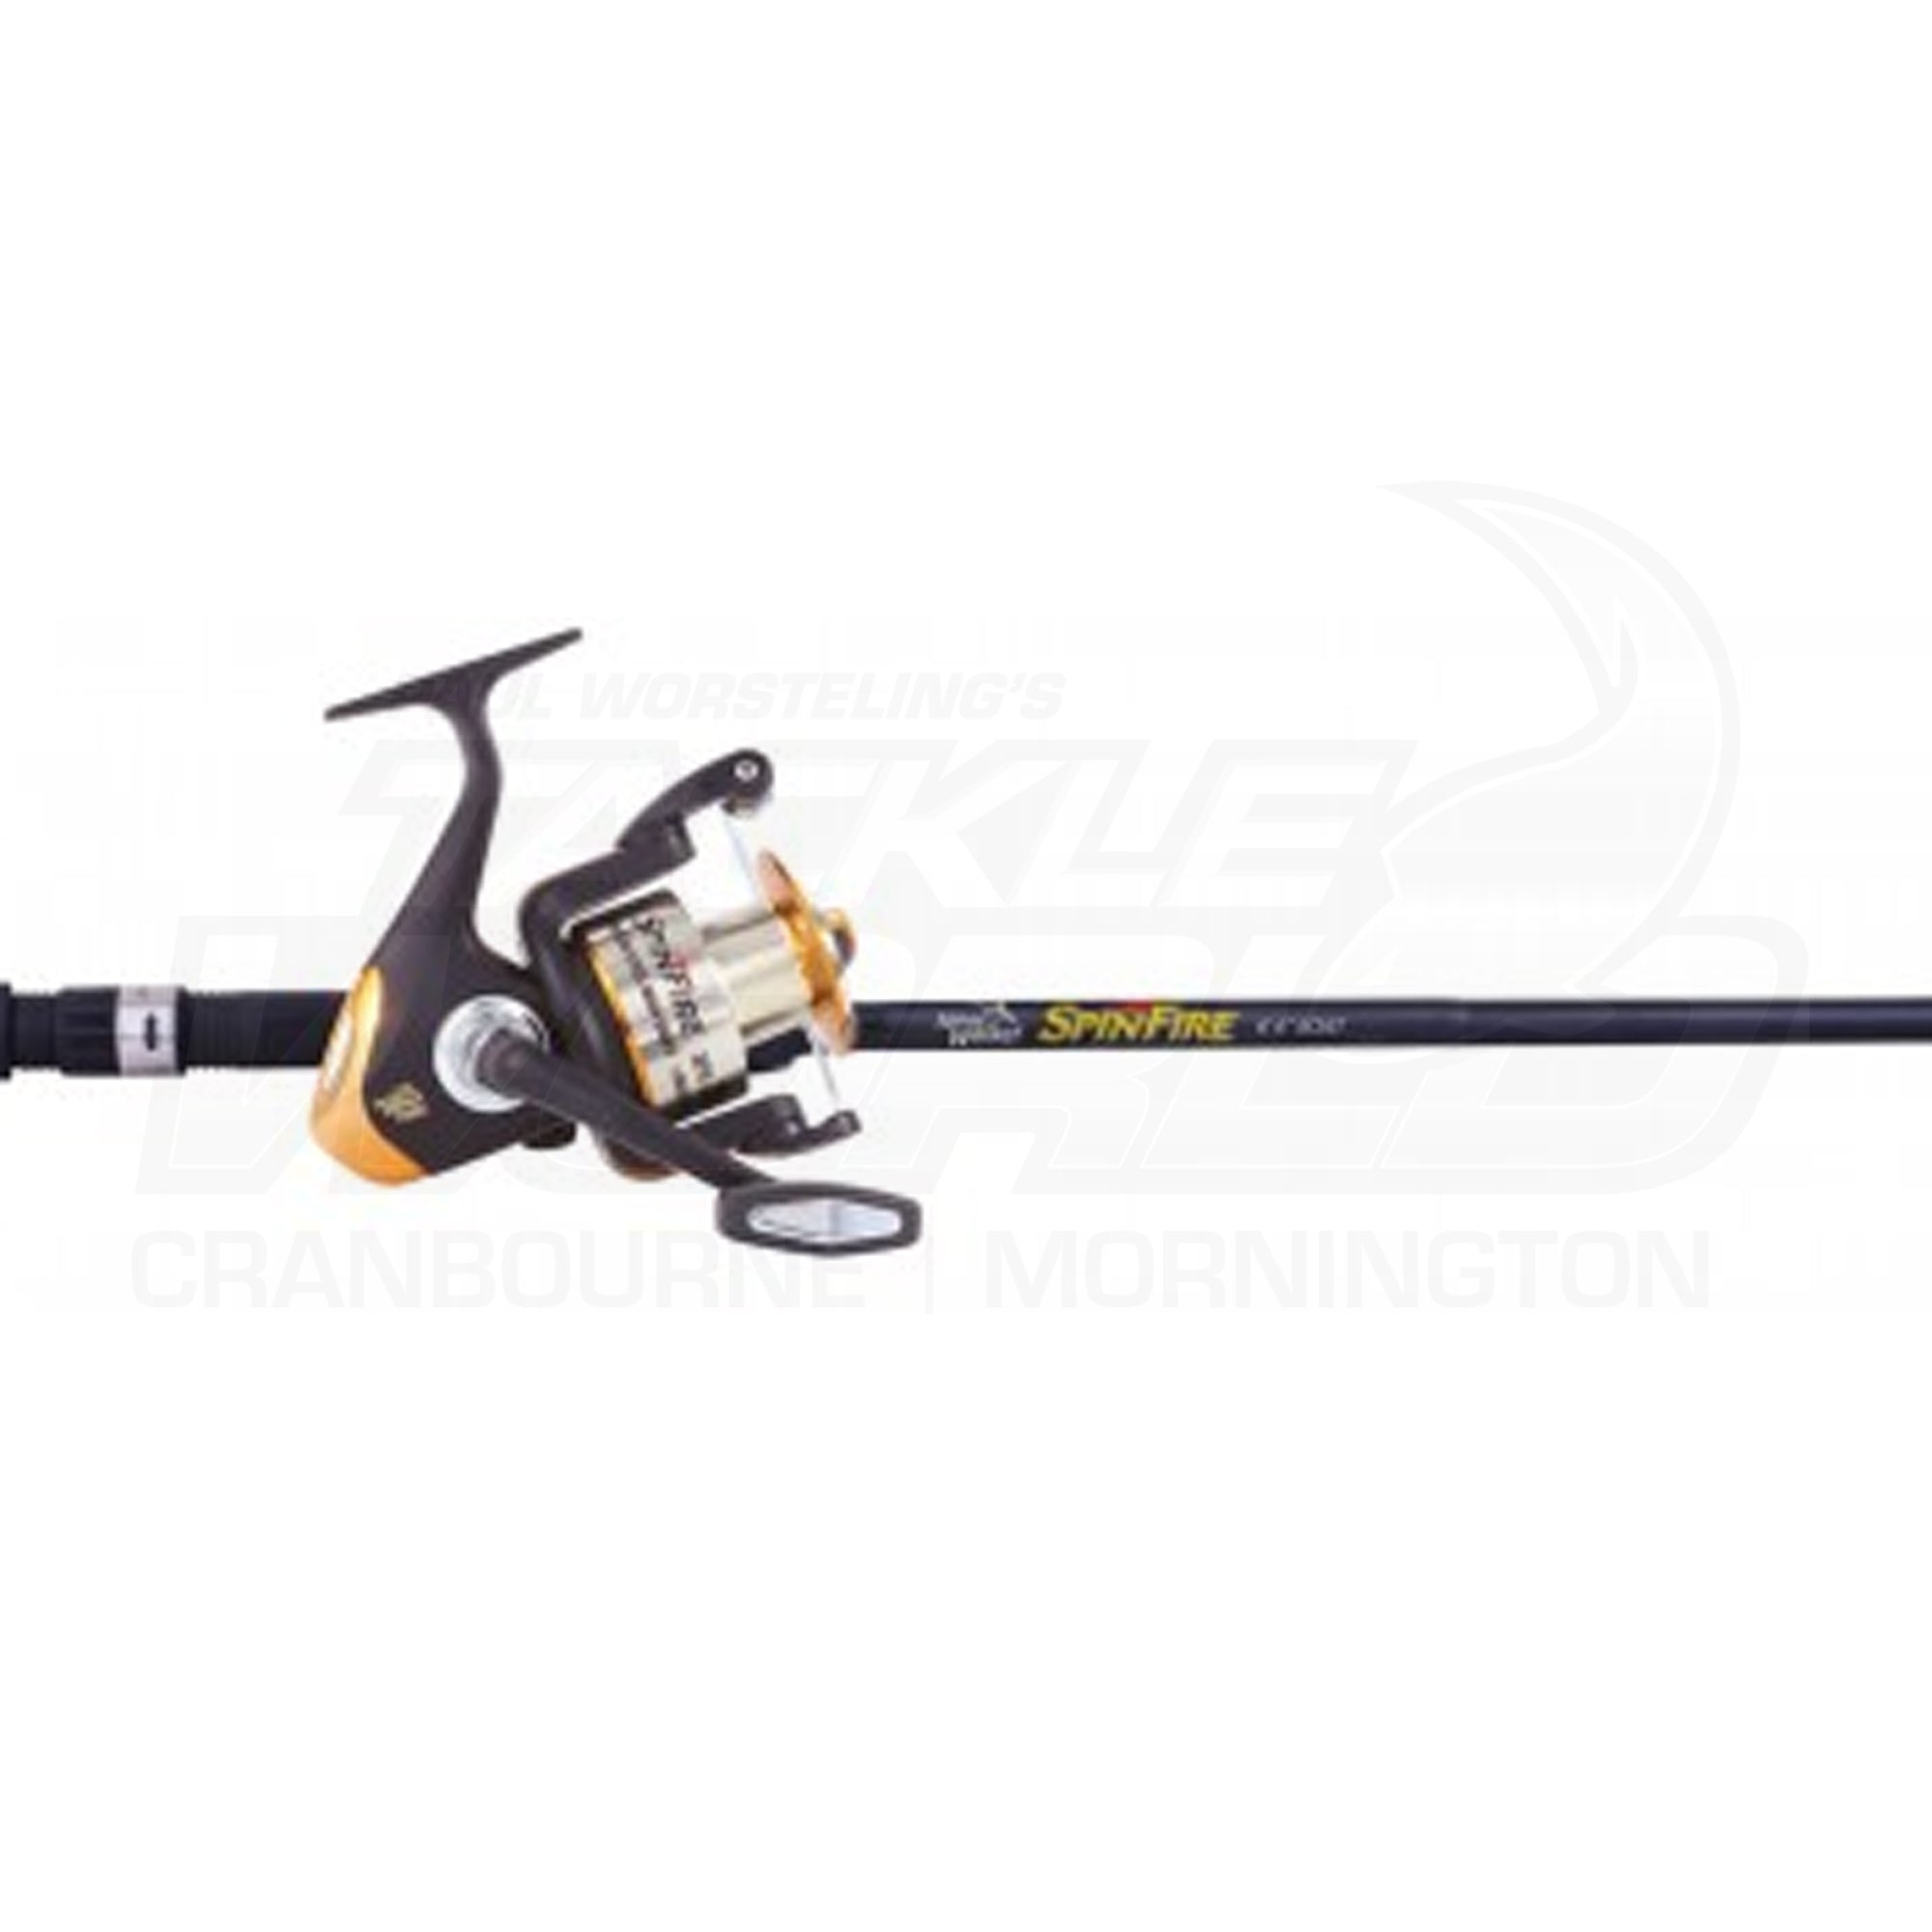 Jarvis Walker Spinfire Rod and Reel Spin Combos BRAND NEW